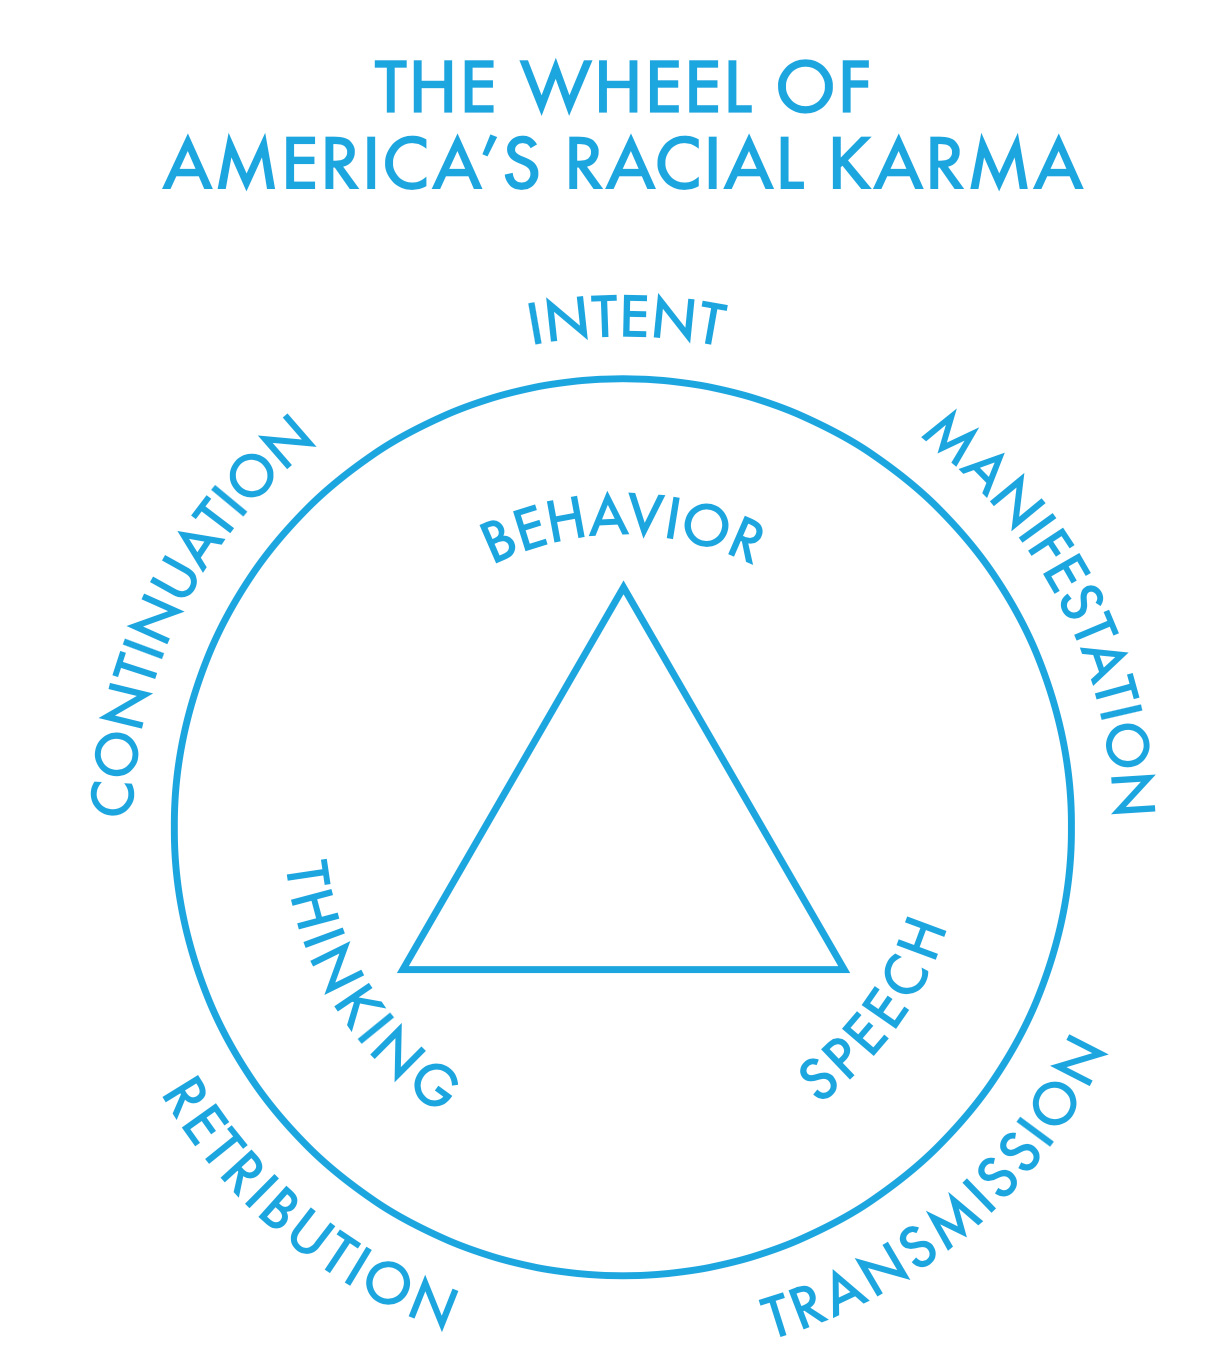 """""""The Wheel of America's Racial Karma"""" image. A triangle with the words 'Behaviour', 'speech,' and 'thinking' at each point sits within a larger circle. Outside the circle are the words 'intent', 'manifestation', 'transmission', 'retribution', 'continuation'."""